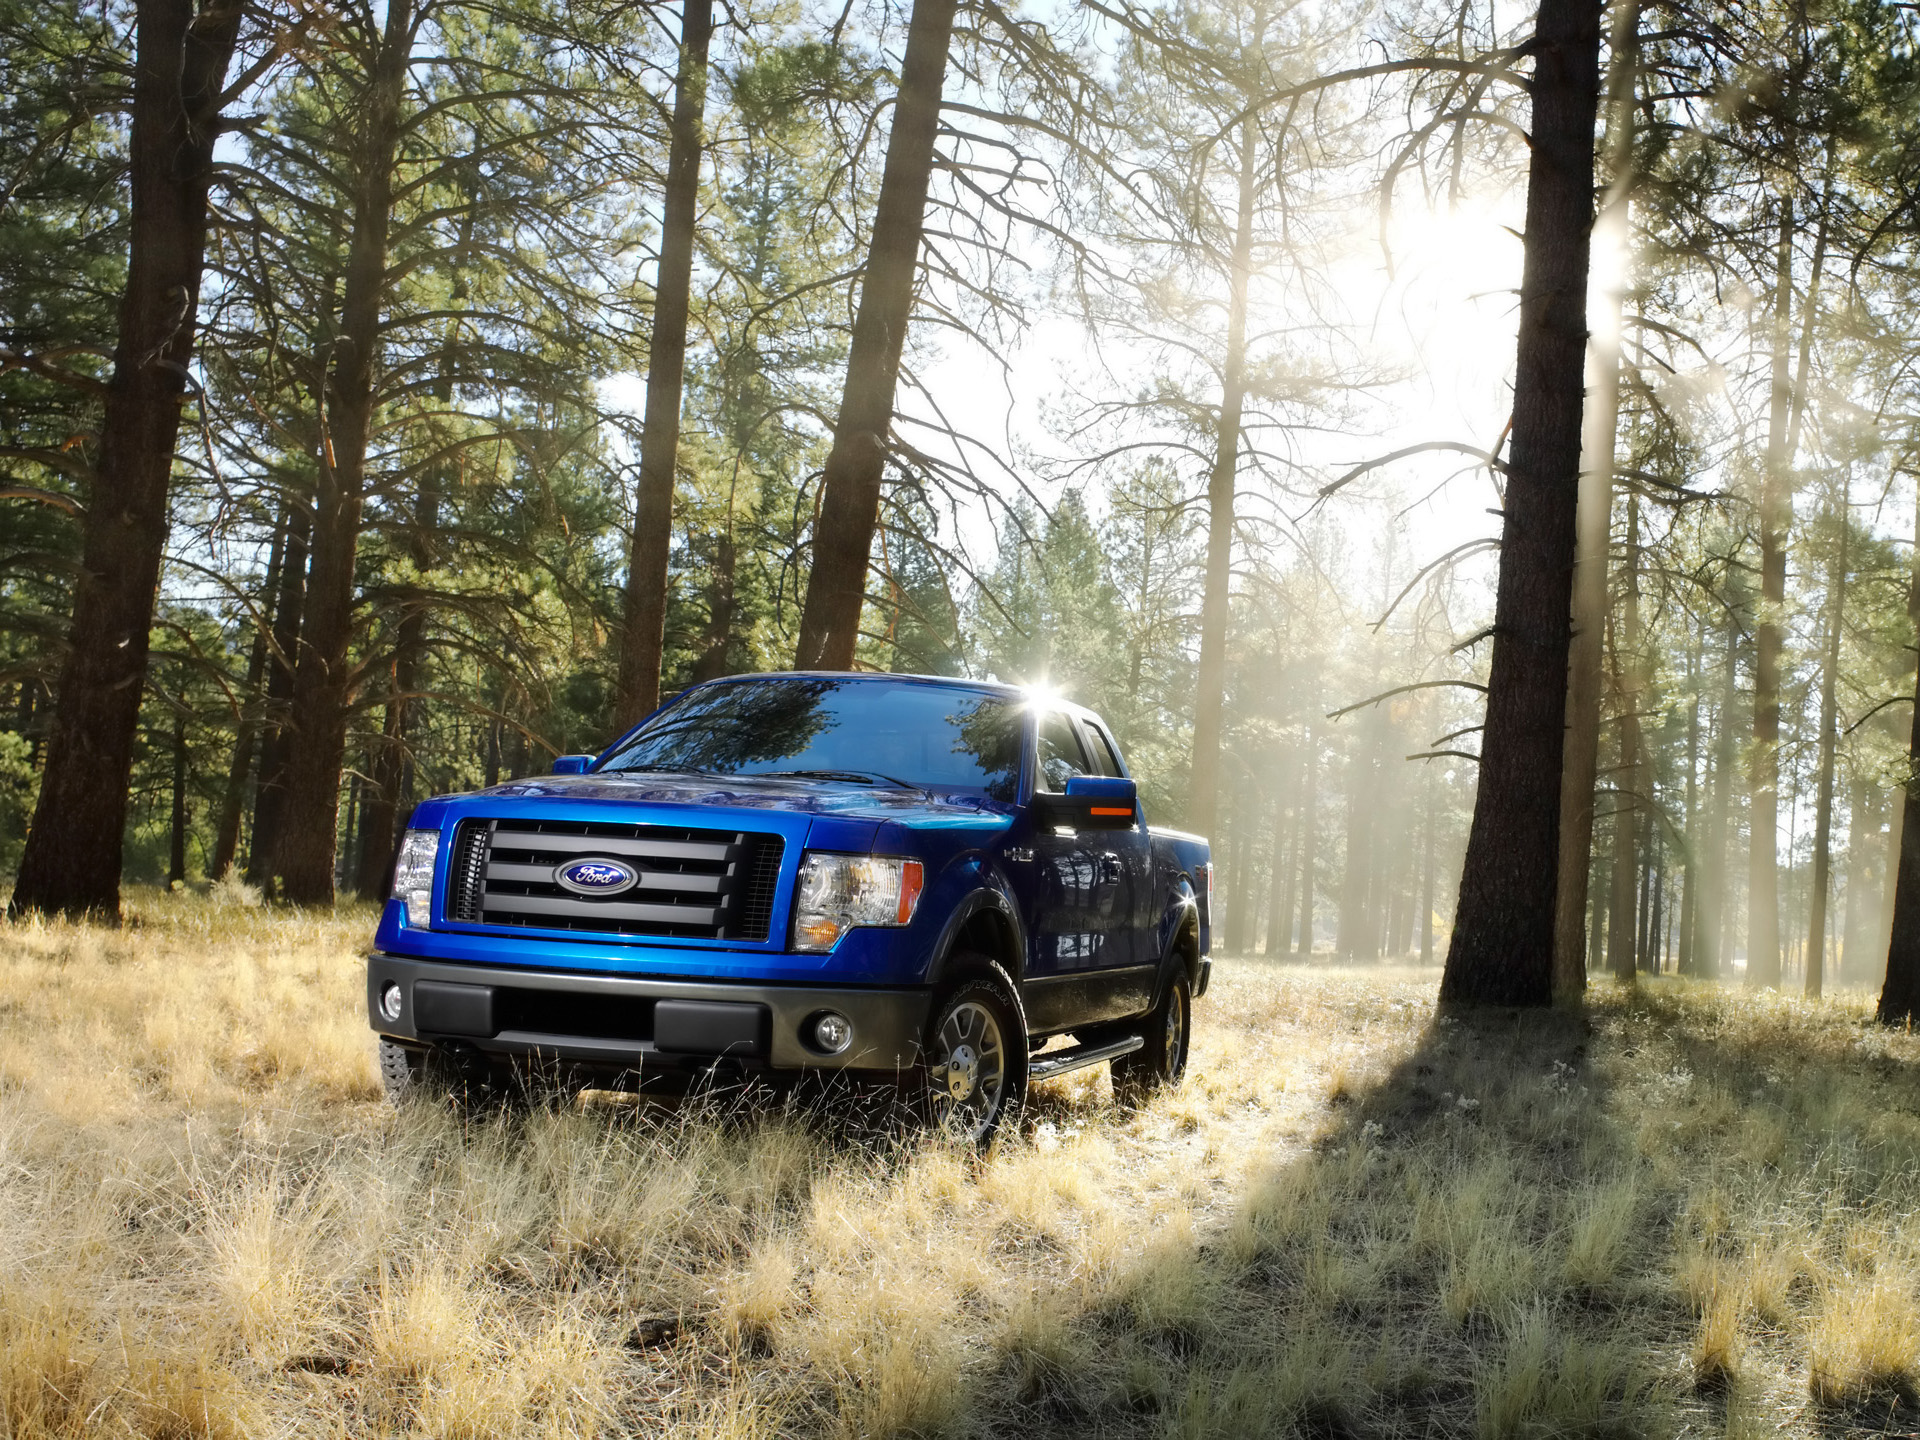 Ford F150 stock photos